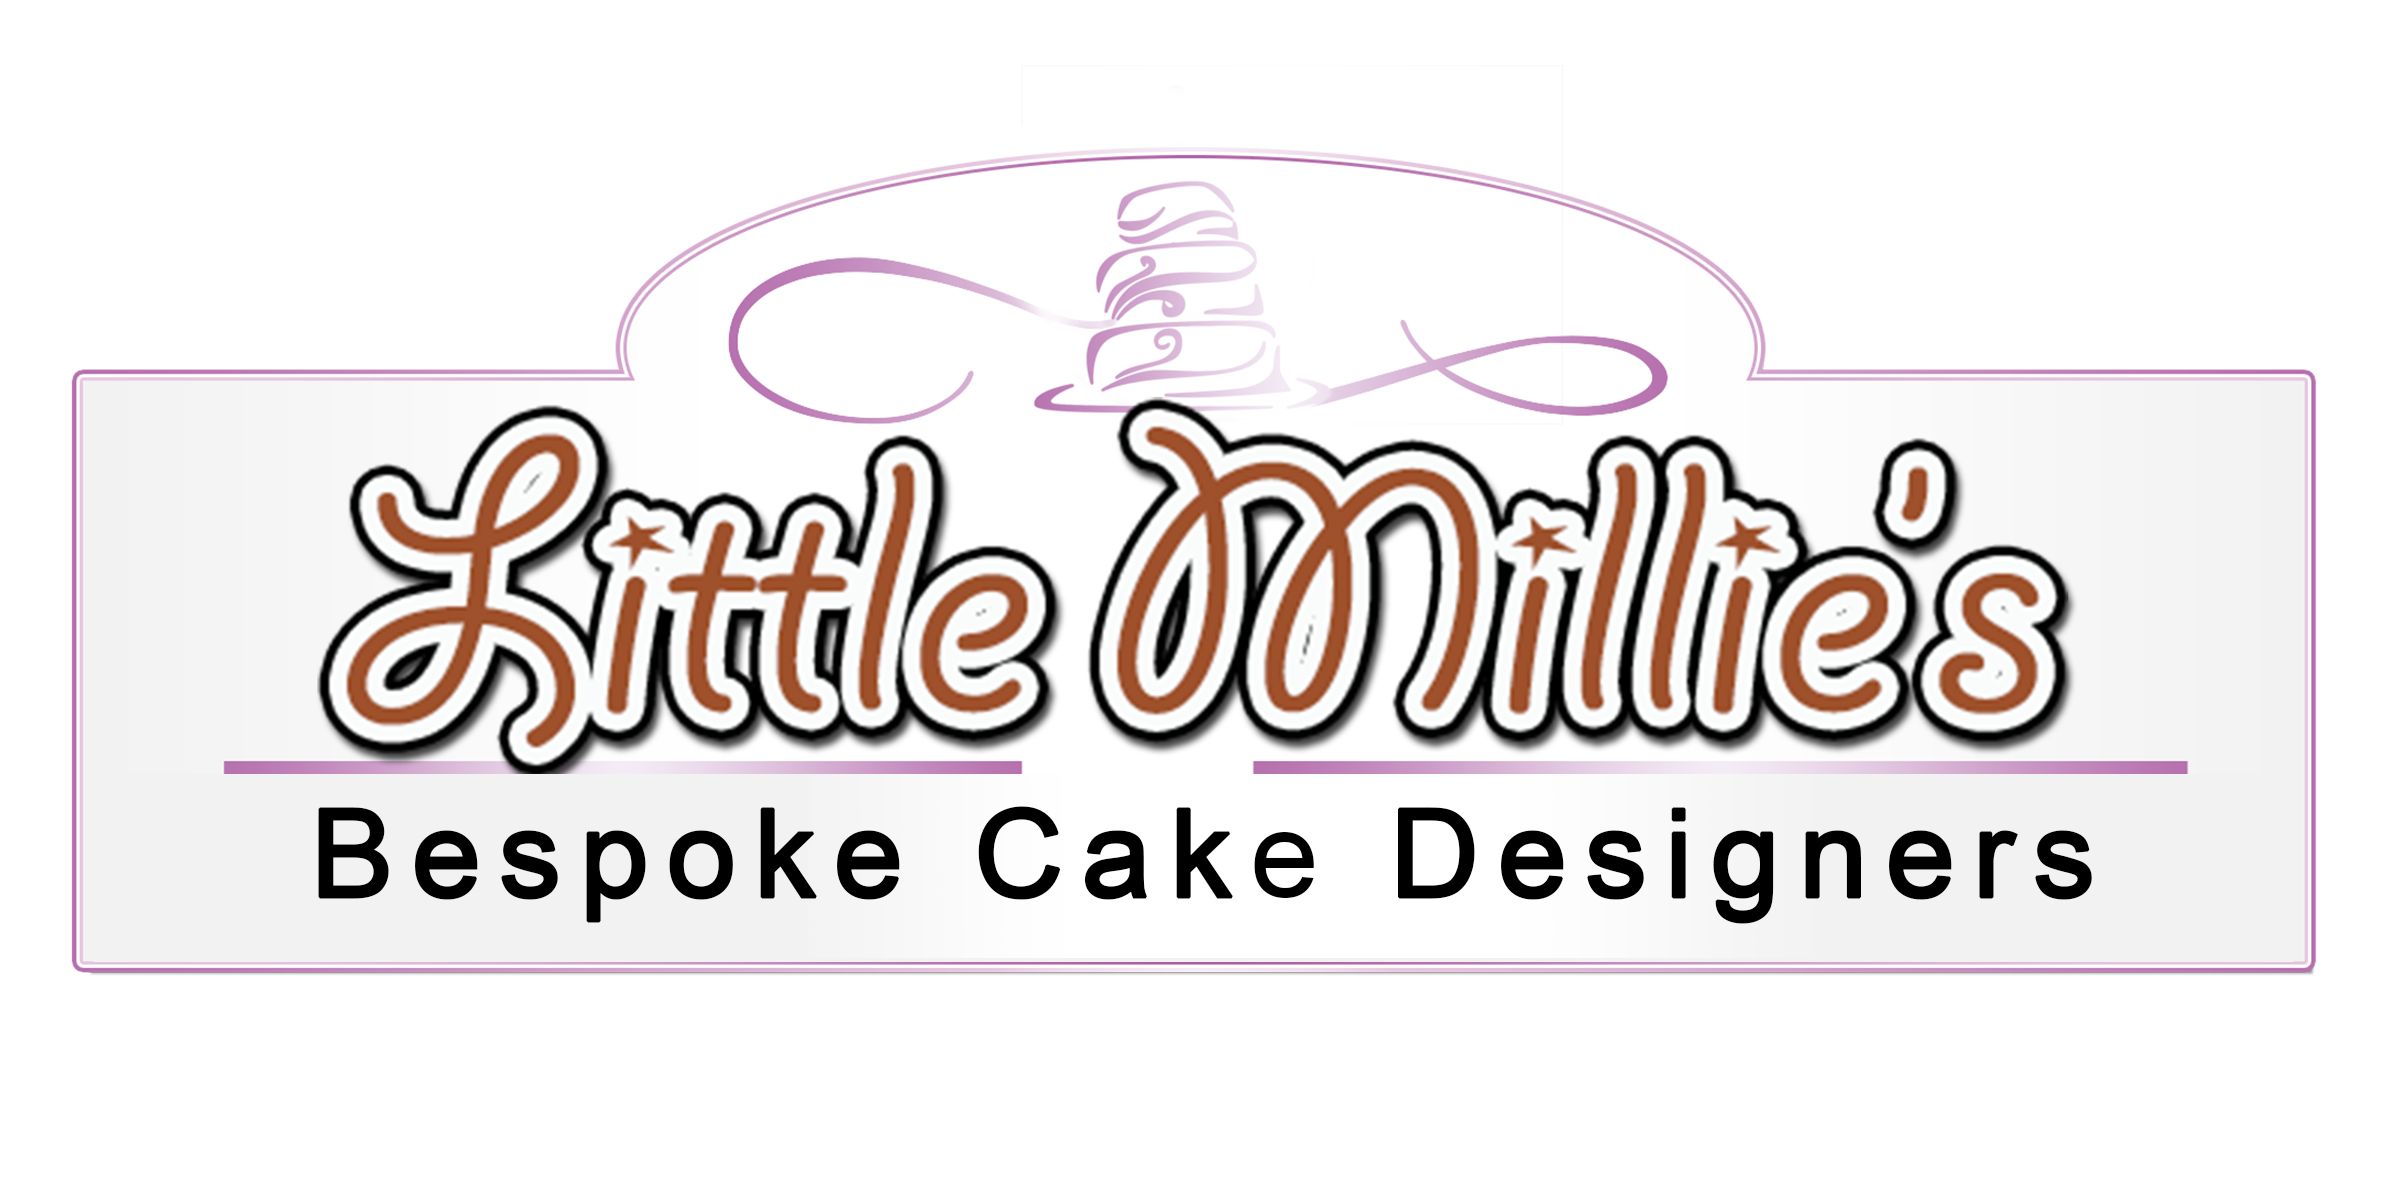 Norfolk and Suffolks best wedding cakes by little Millie's